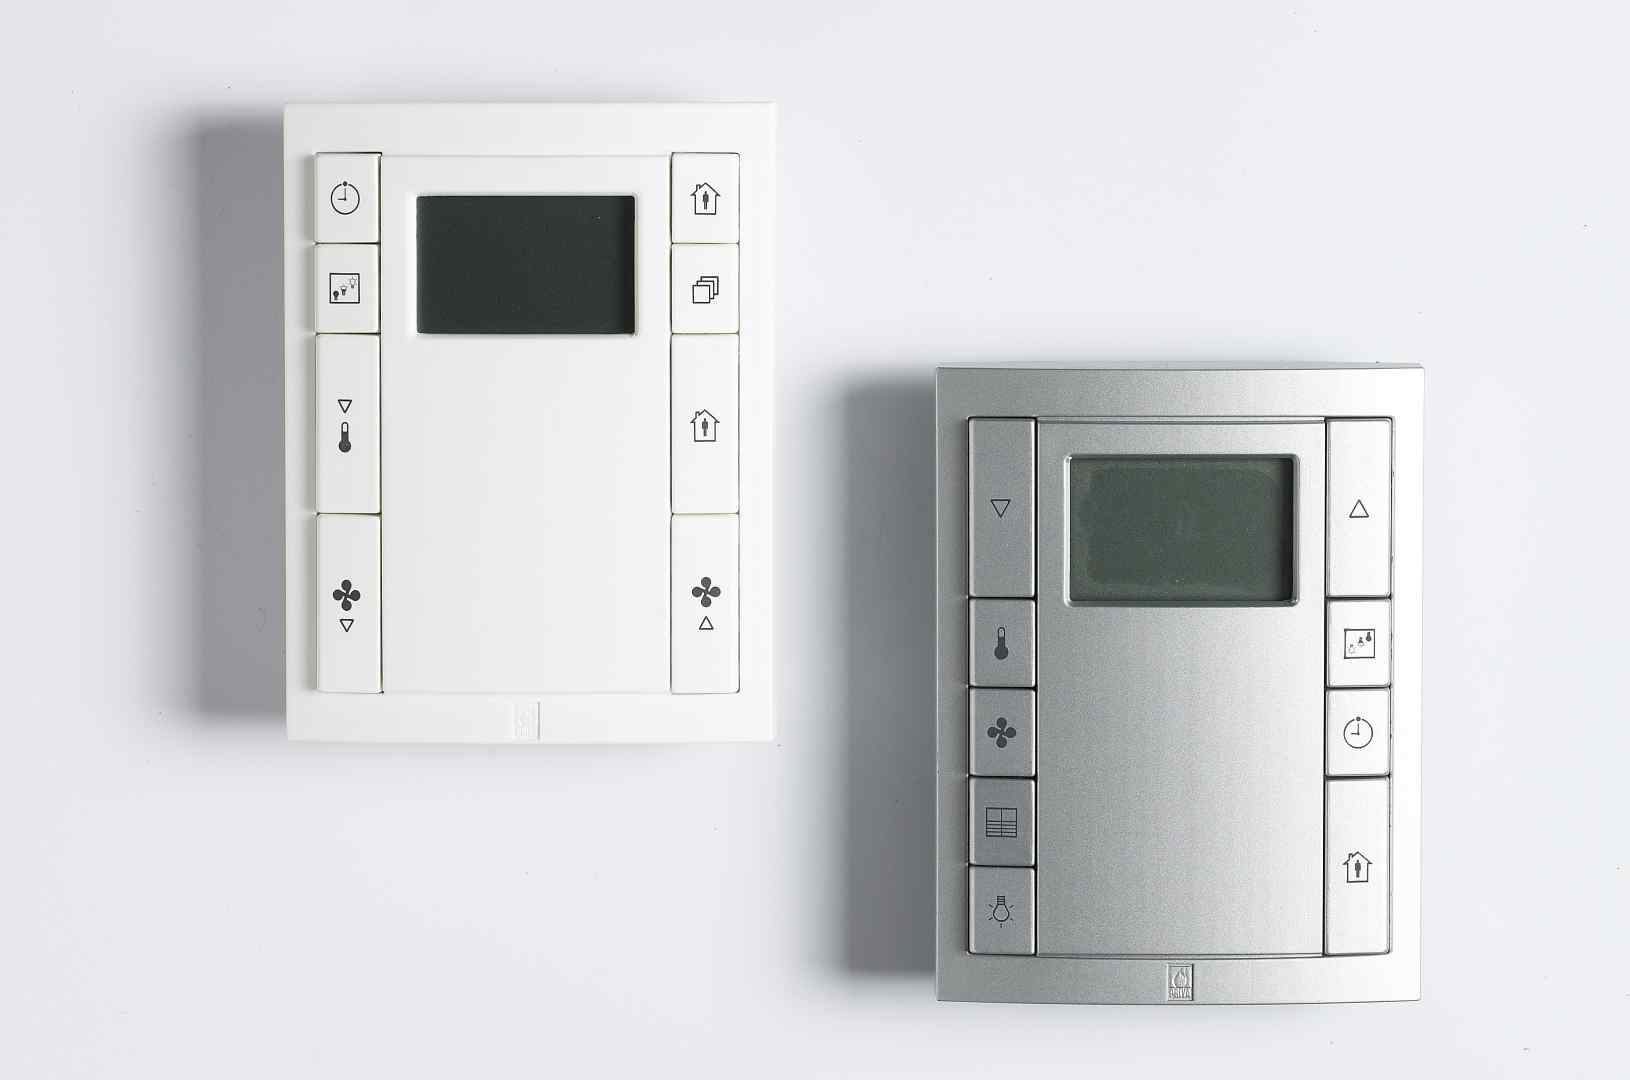 Housing for climate control system